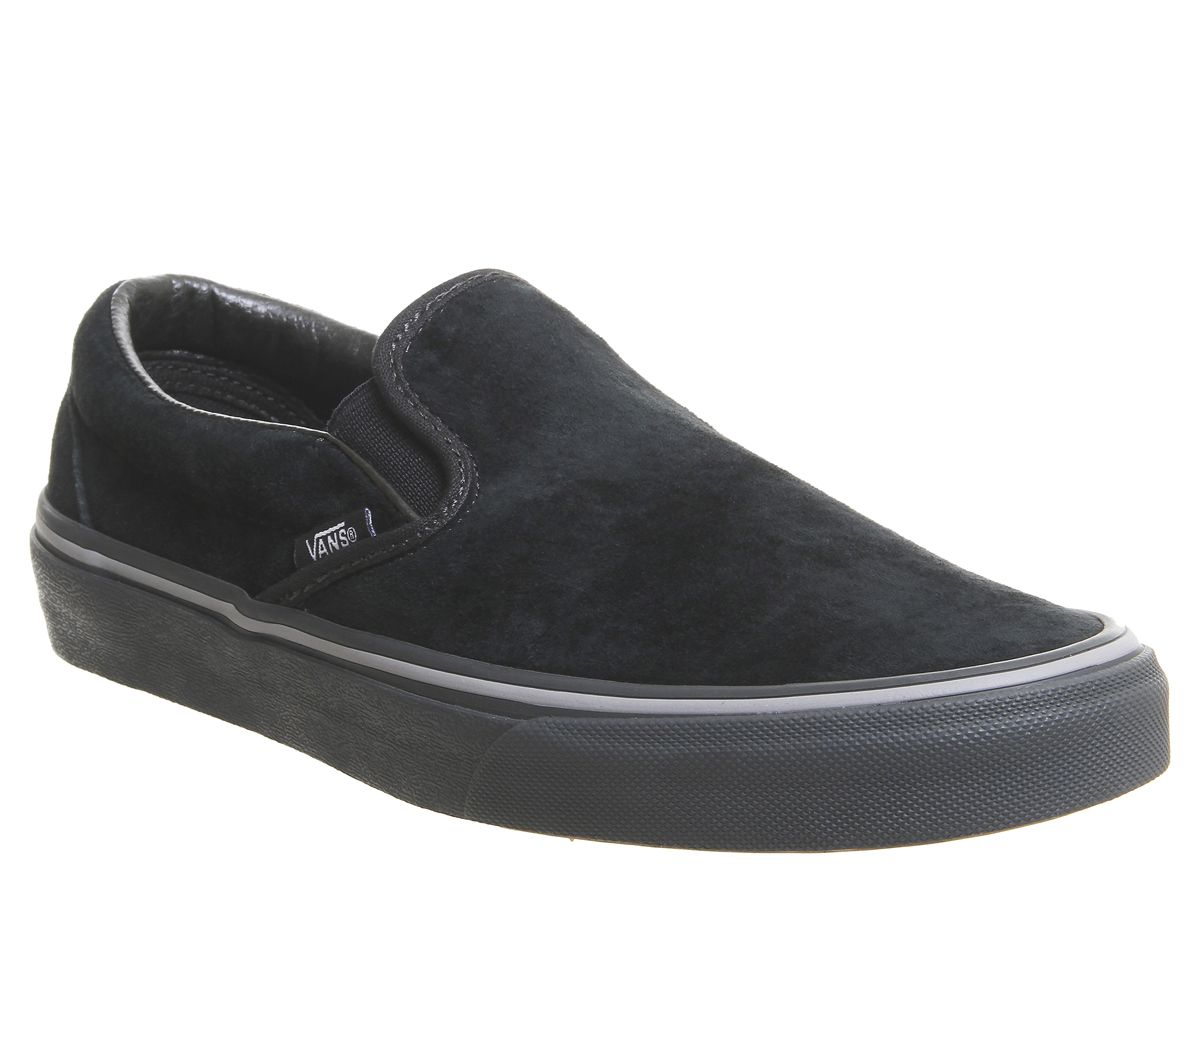 13ca1c345428c3 Vans Vans Classic Slip On Trainers Pirate Black Frost Grey - Unisex ...